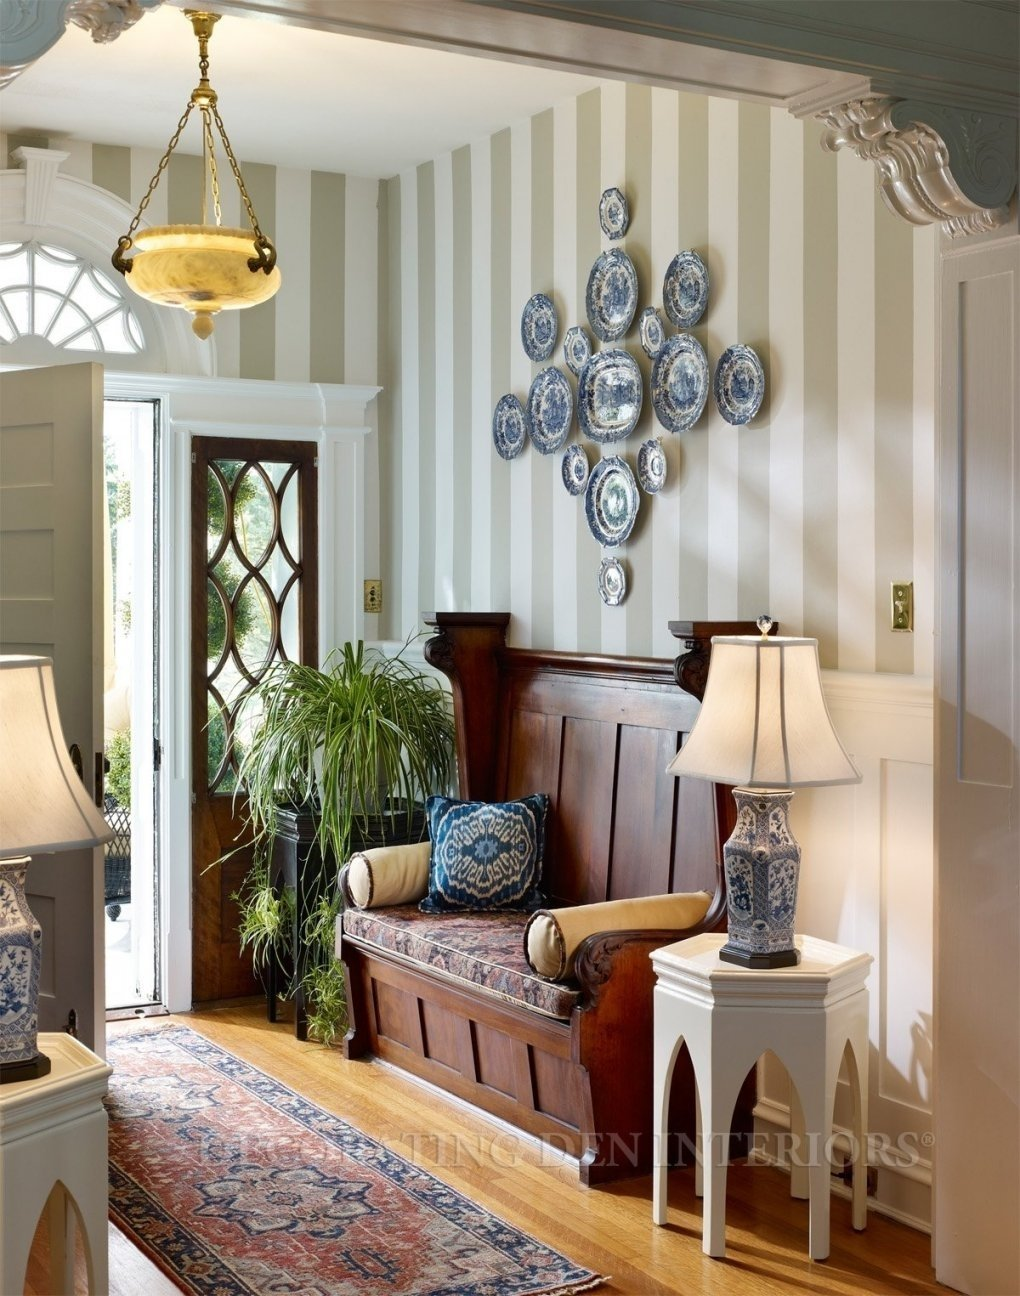 10 Most Popular Entryway Ideas For Small Spaces entryway ideas to have nice entryway custom home design with 2020